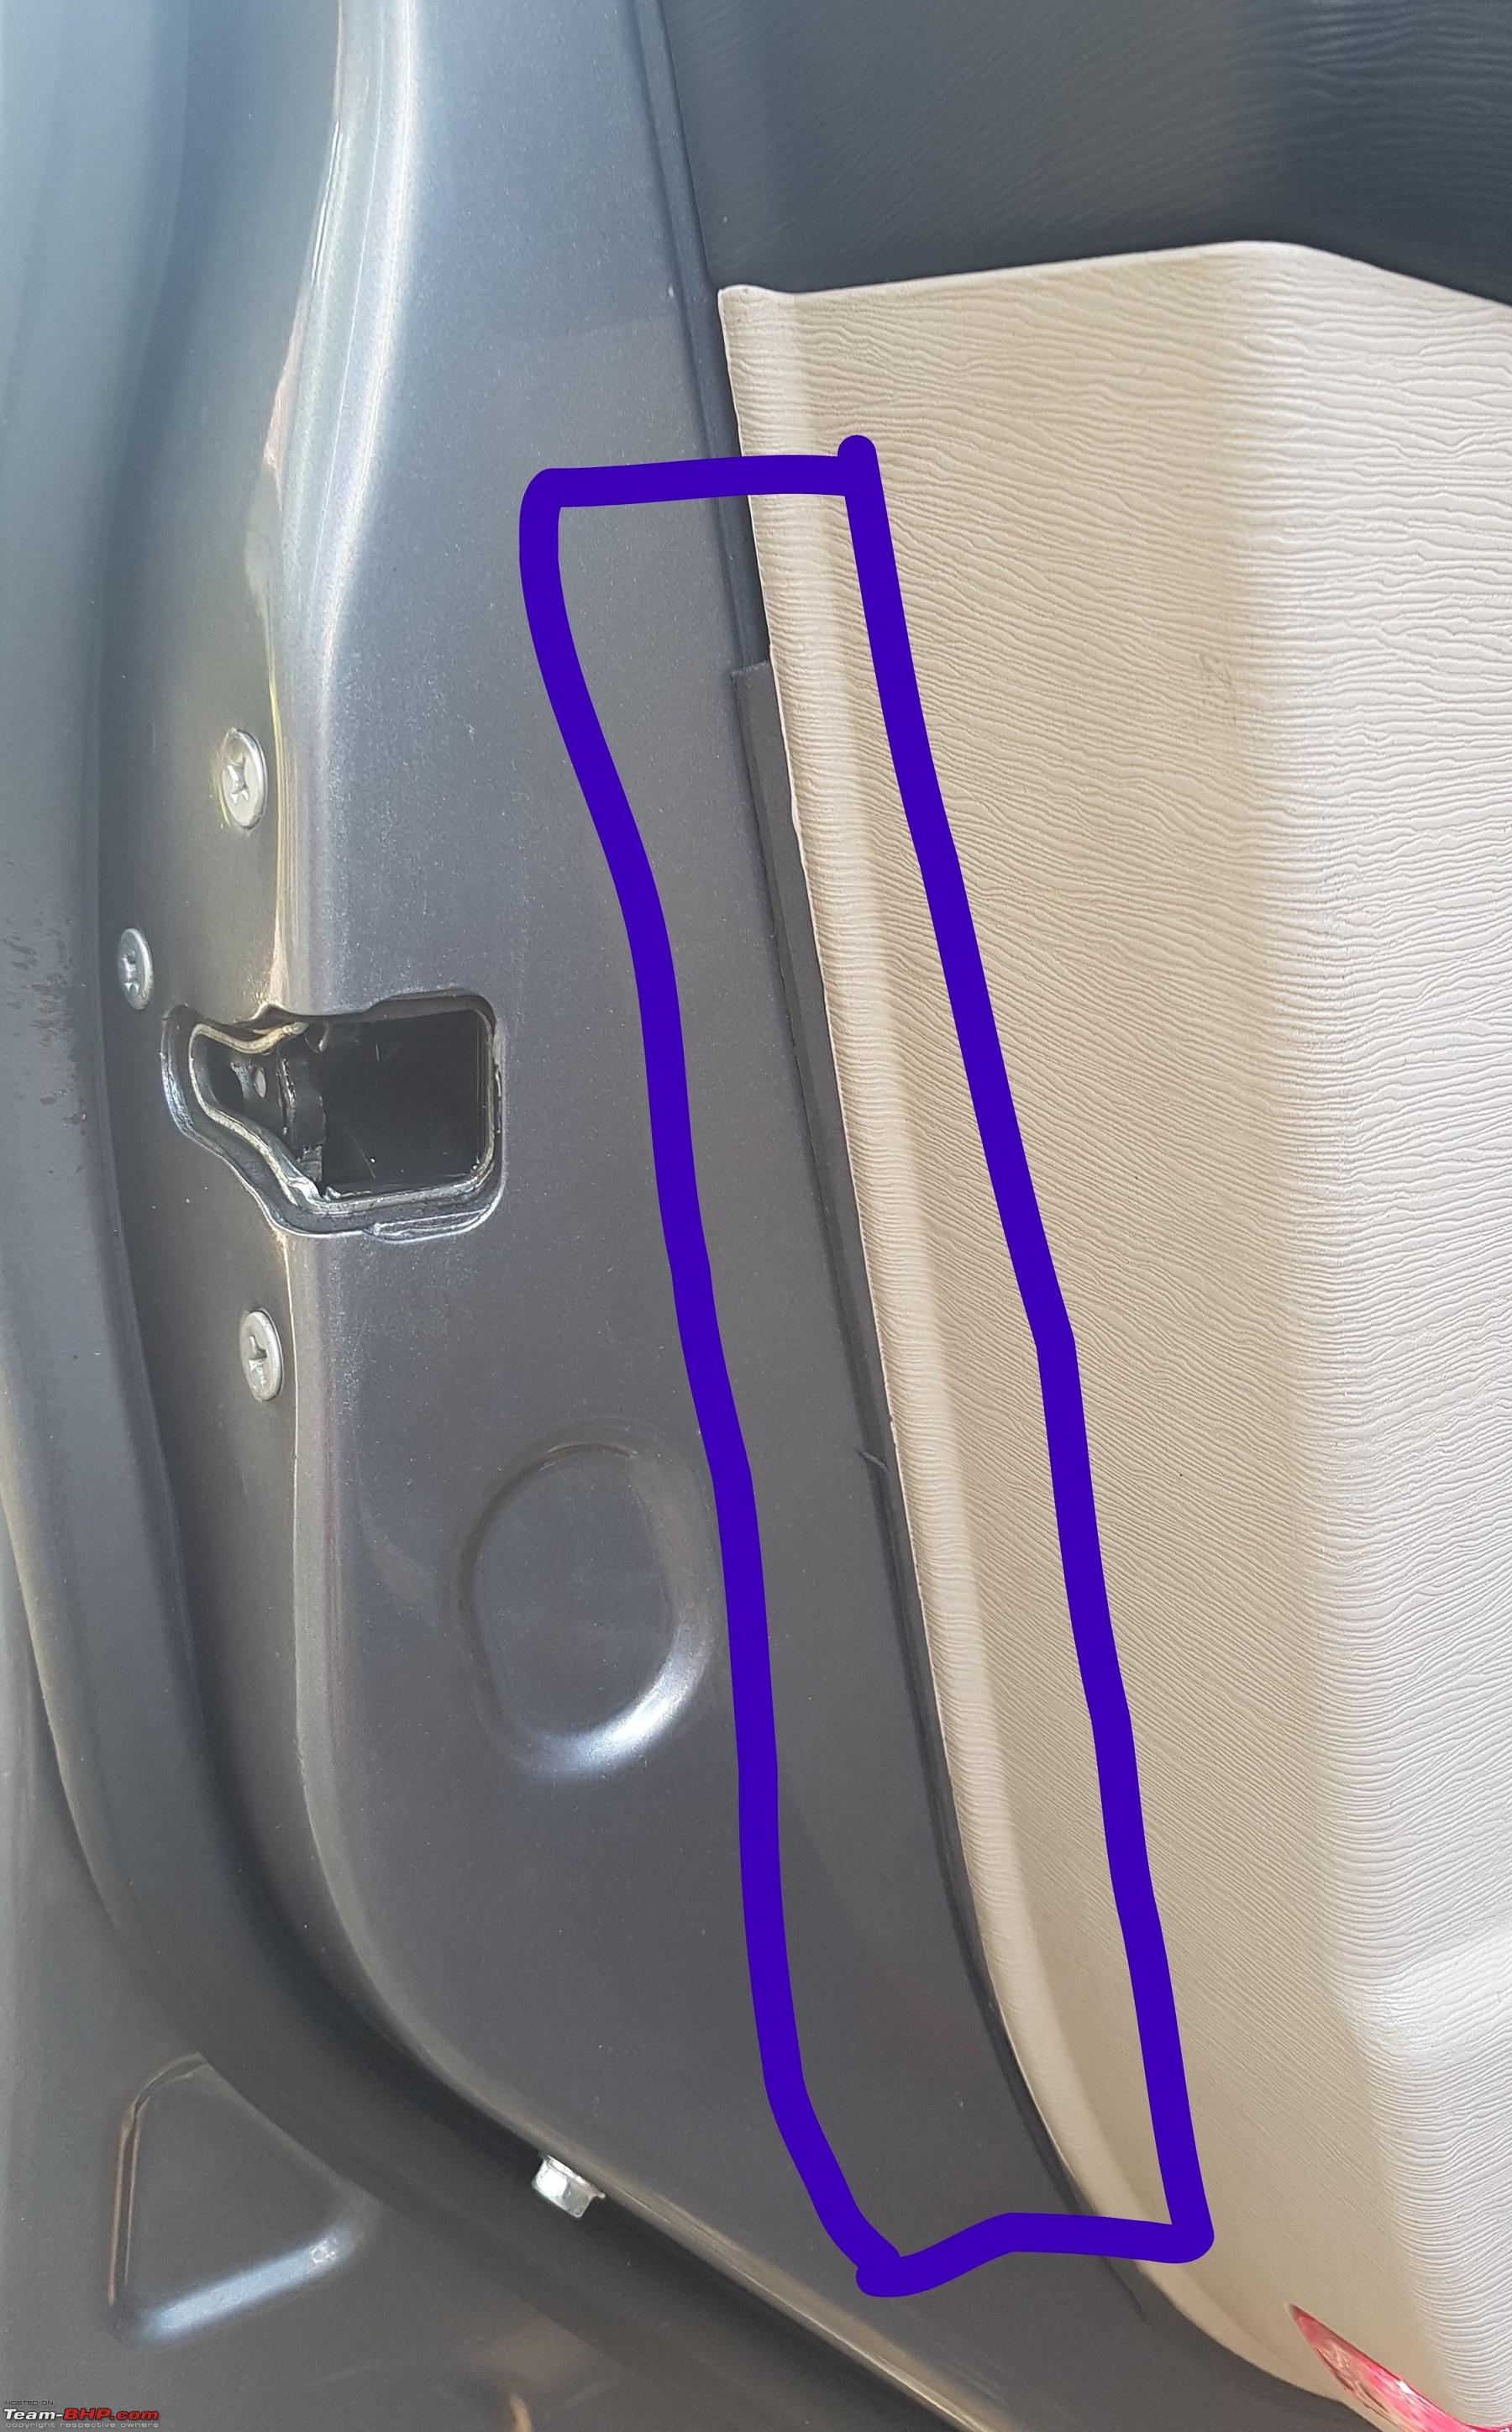 XUV500 DIY: Removing rattles from the door panel - Team-BHP